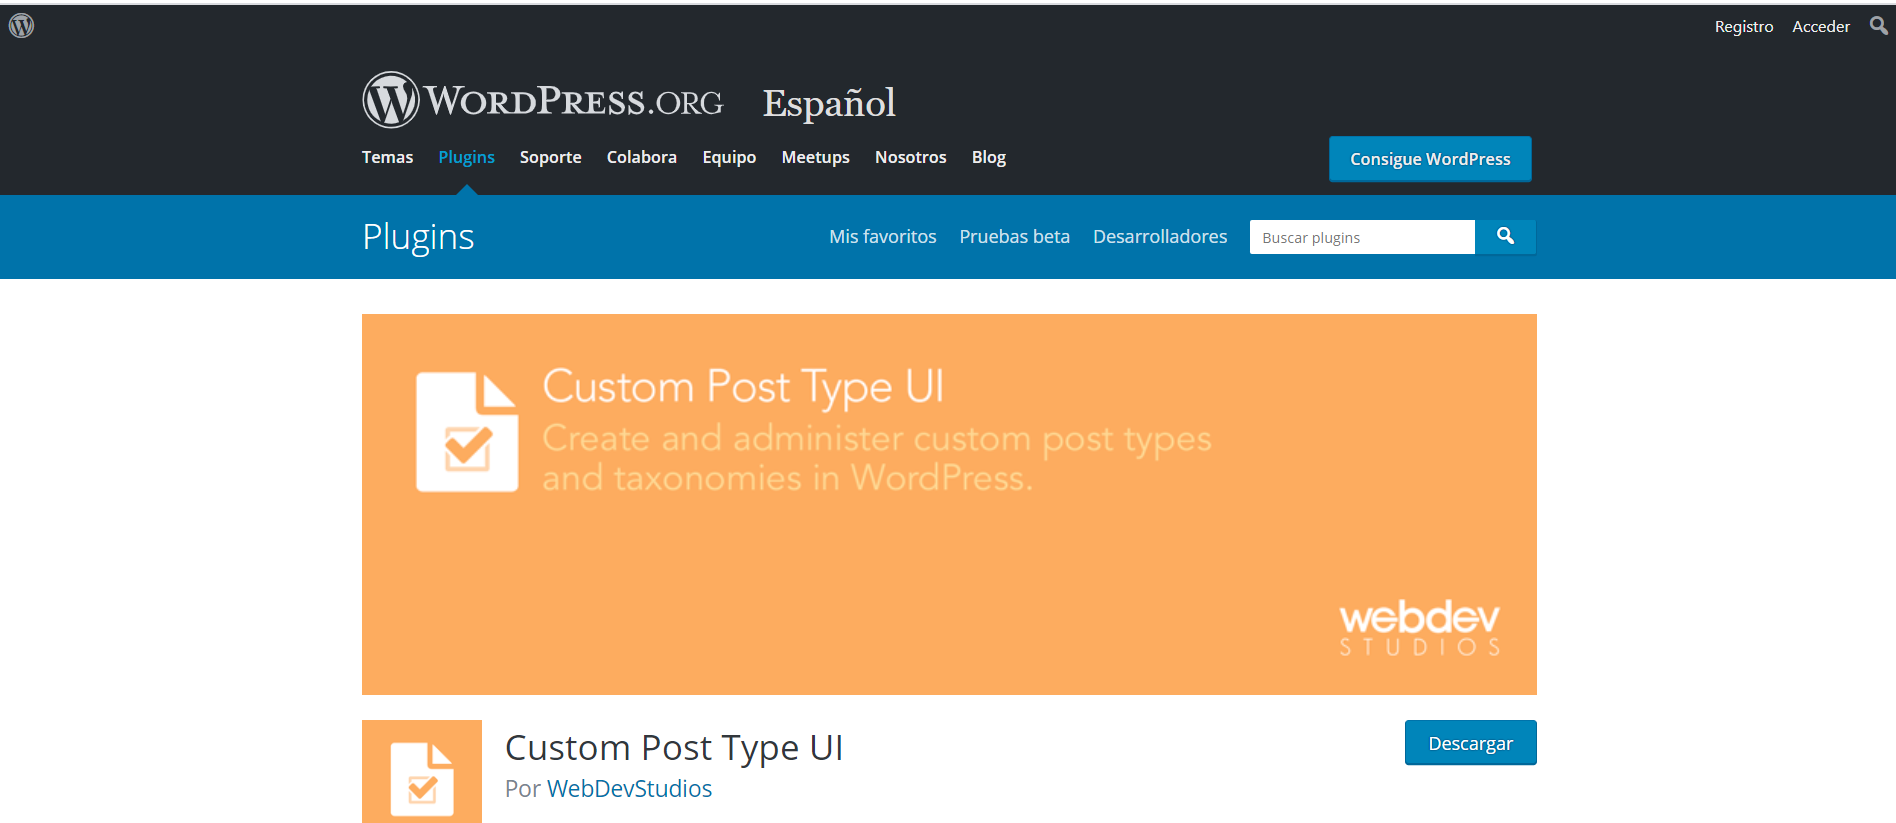 Custom Post Type UI Por WebDevStudios